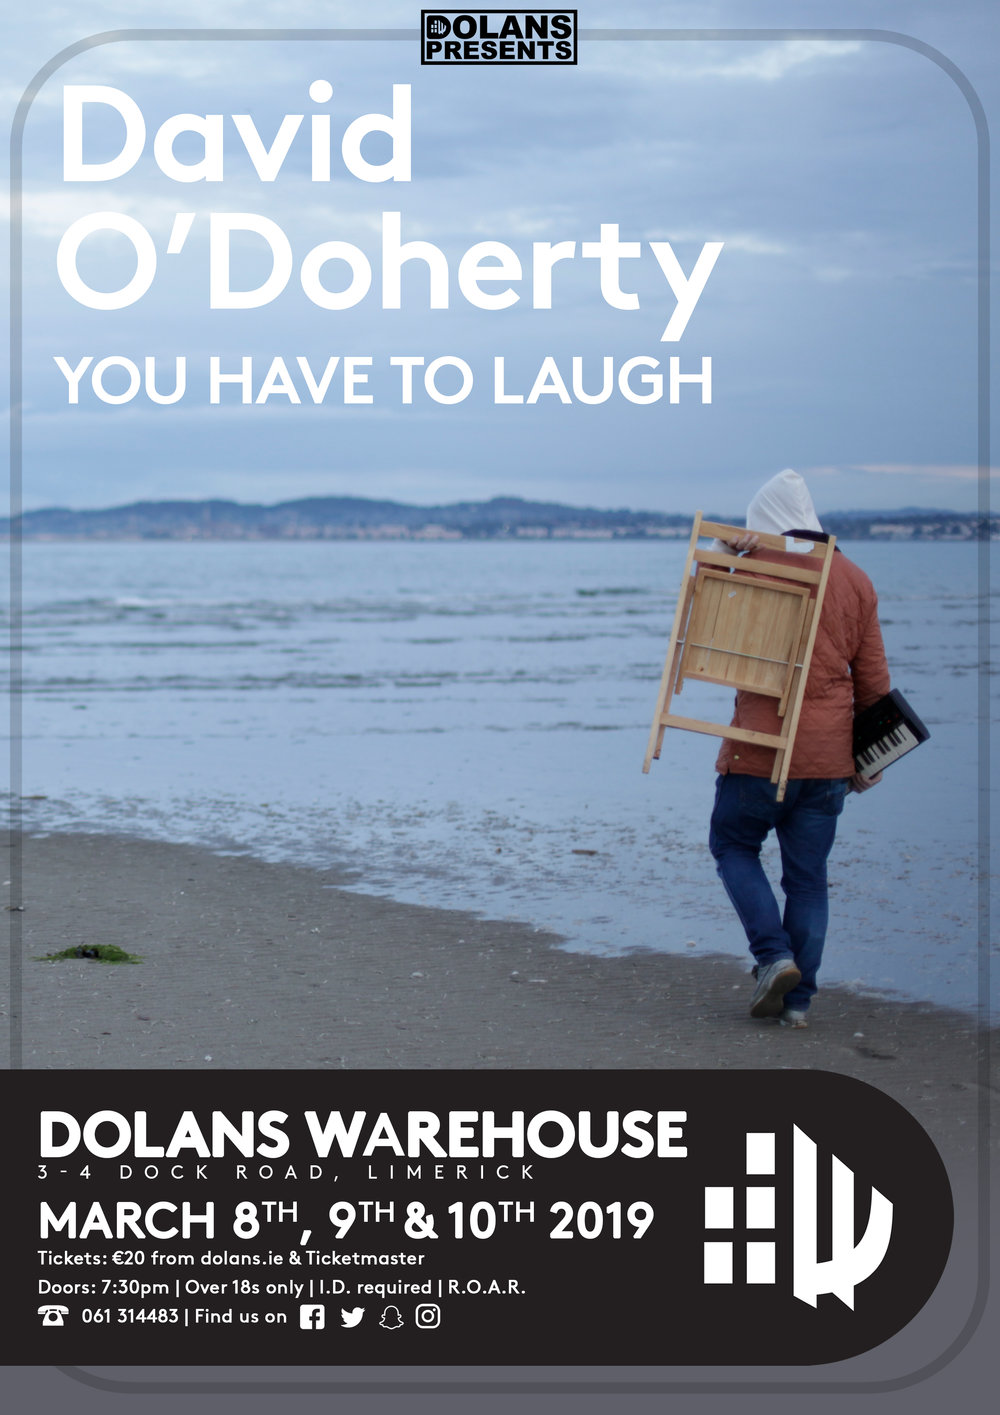 On Sale now from Dolans.ie €20 plus BF